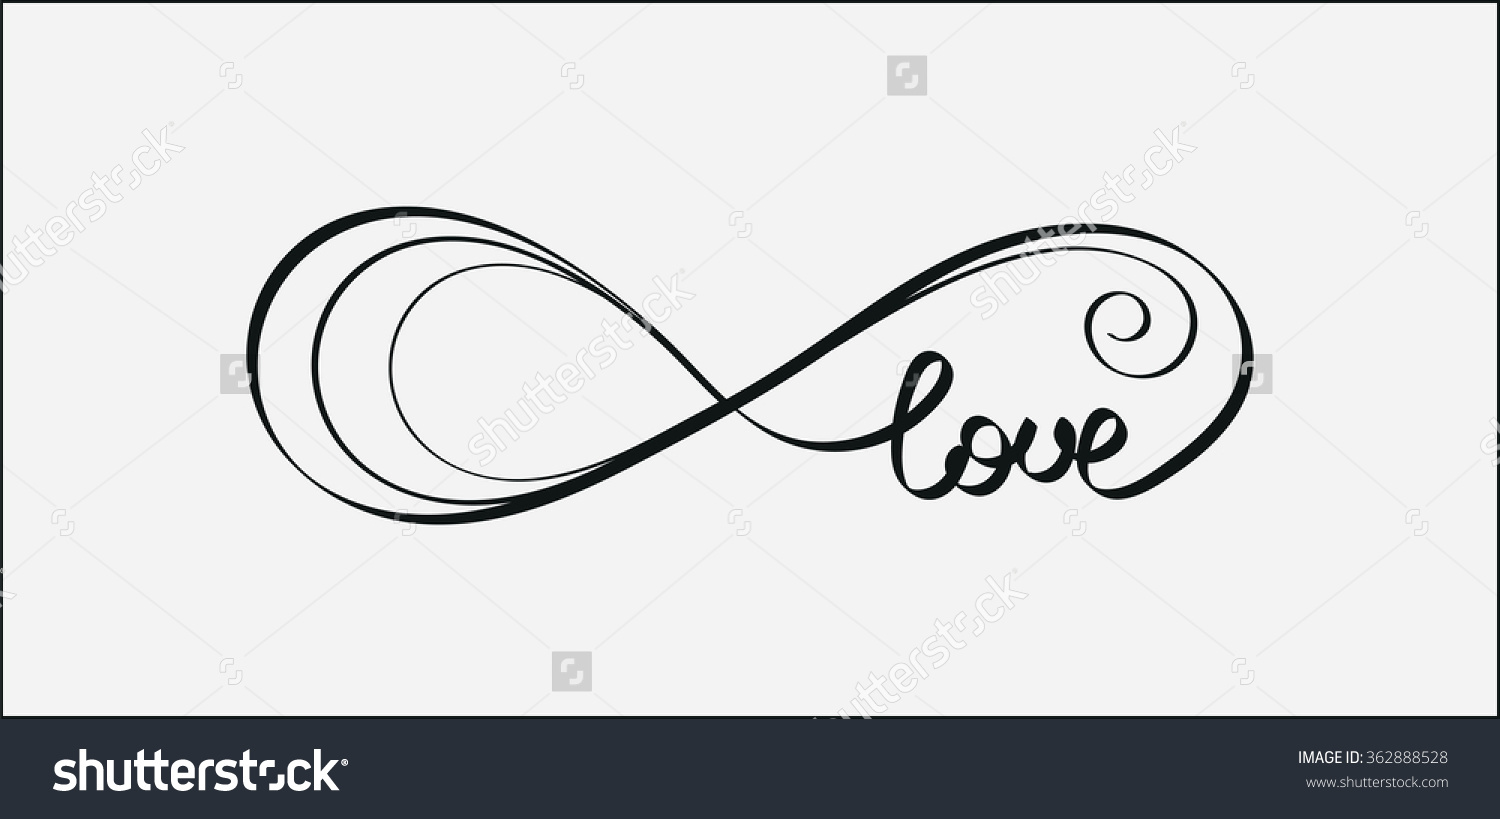 Symbol for eternity love images symbol and sign ideas eternal love clipart clipground eternal love icon valentines day vector stock vector 362888528 buycottarizona biocorpaavc